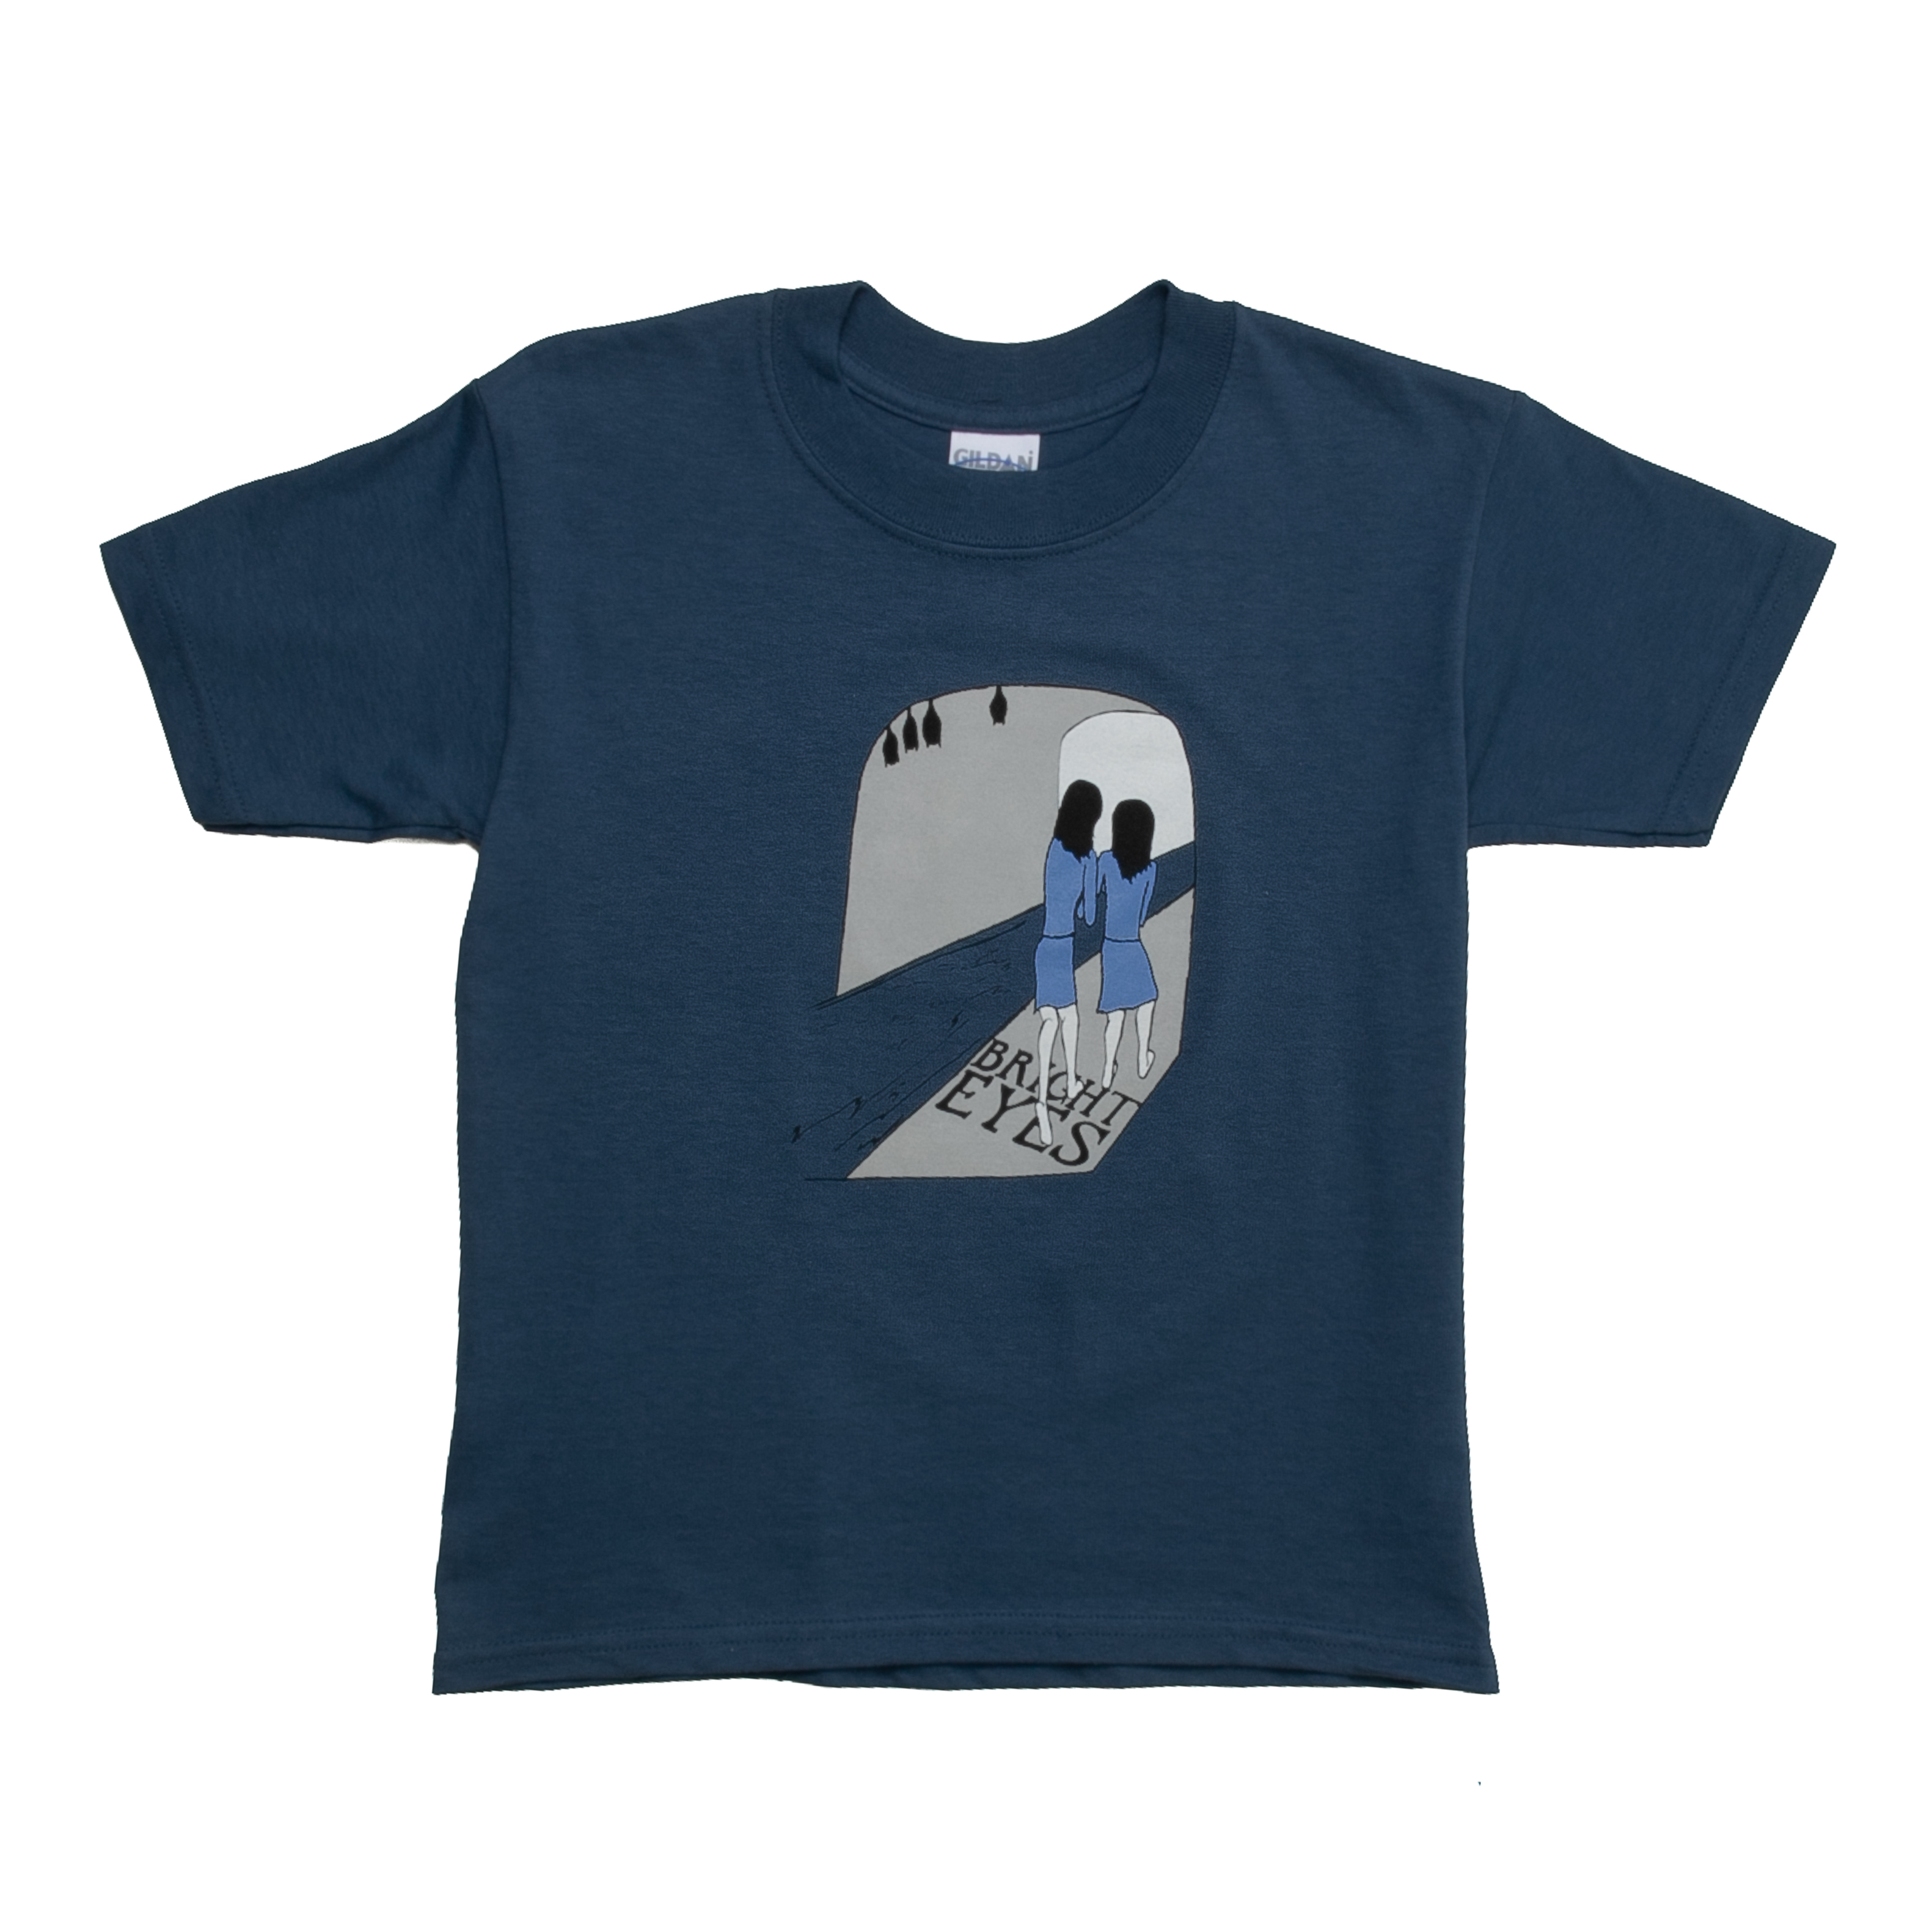 Tunnel Bats Youth Tee - Conor Oberst